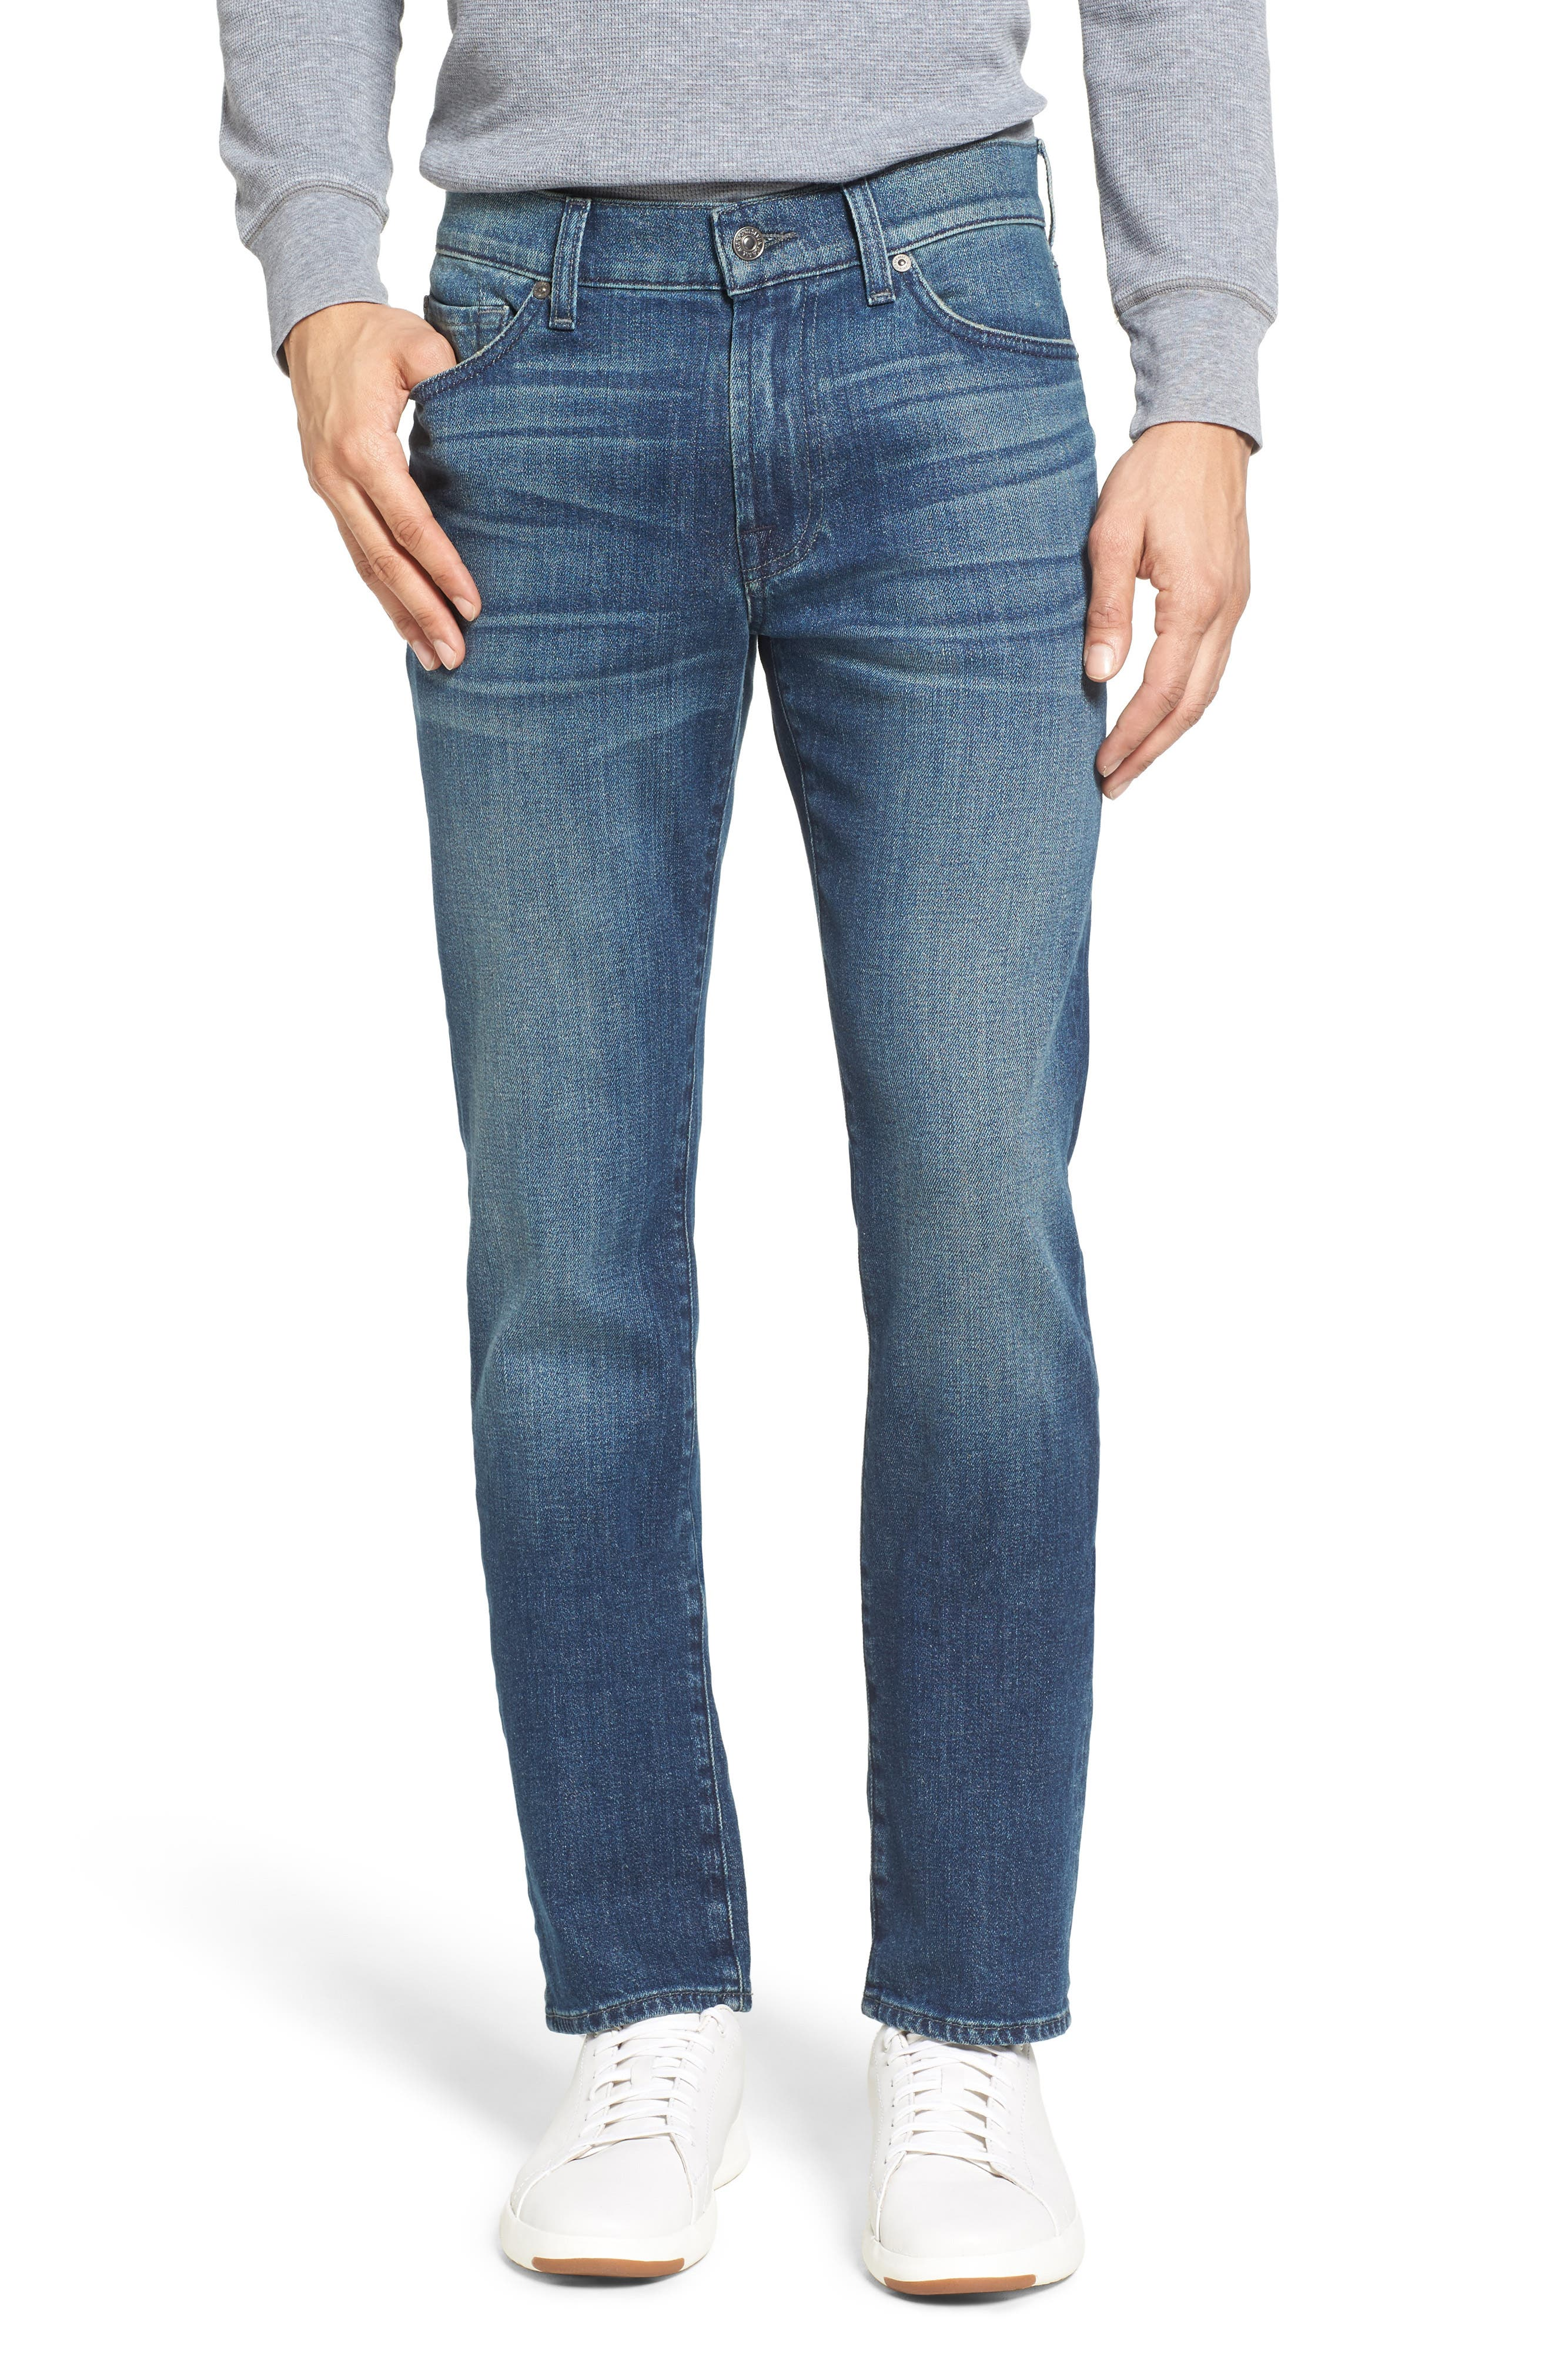 7 For All Mankind Slimmy Slim Fit Jeans,                         Main,                         color, Calgary Blue